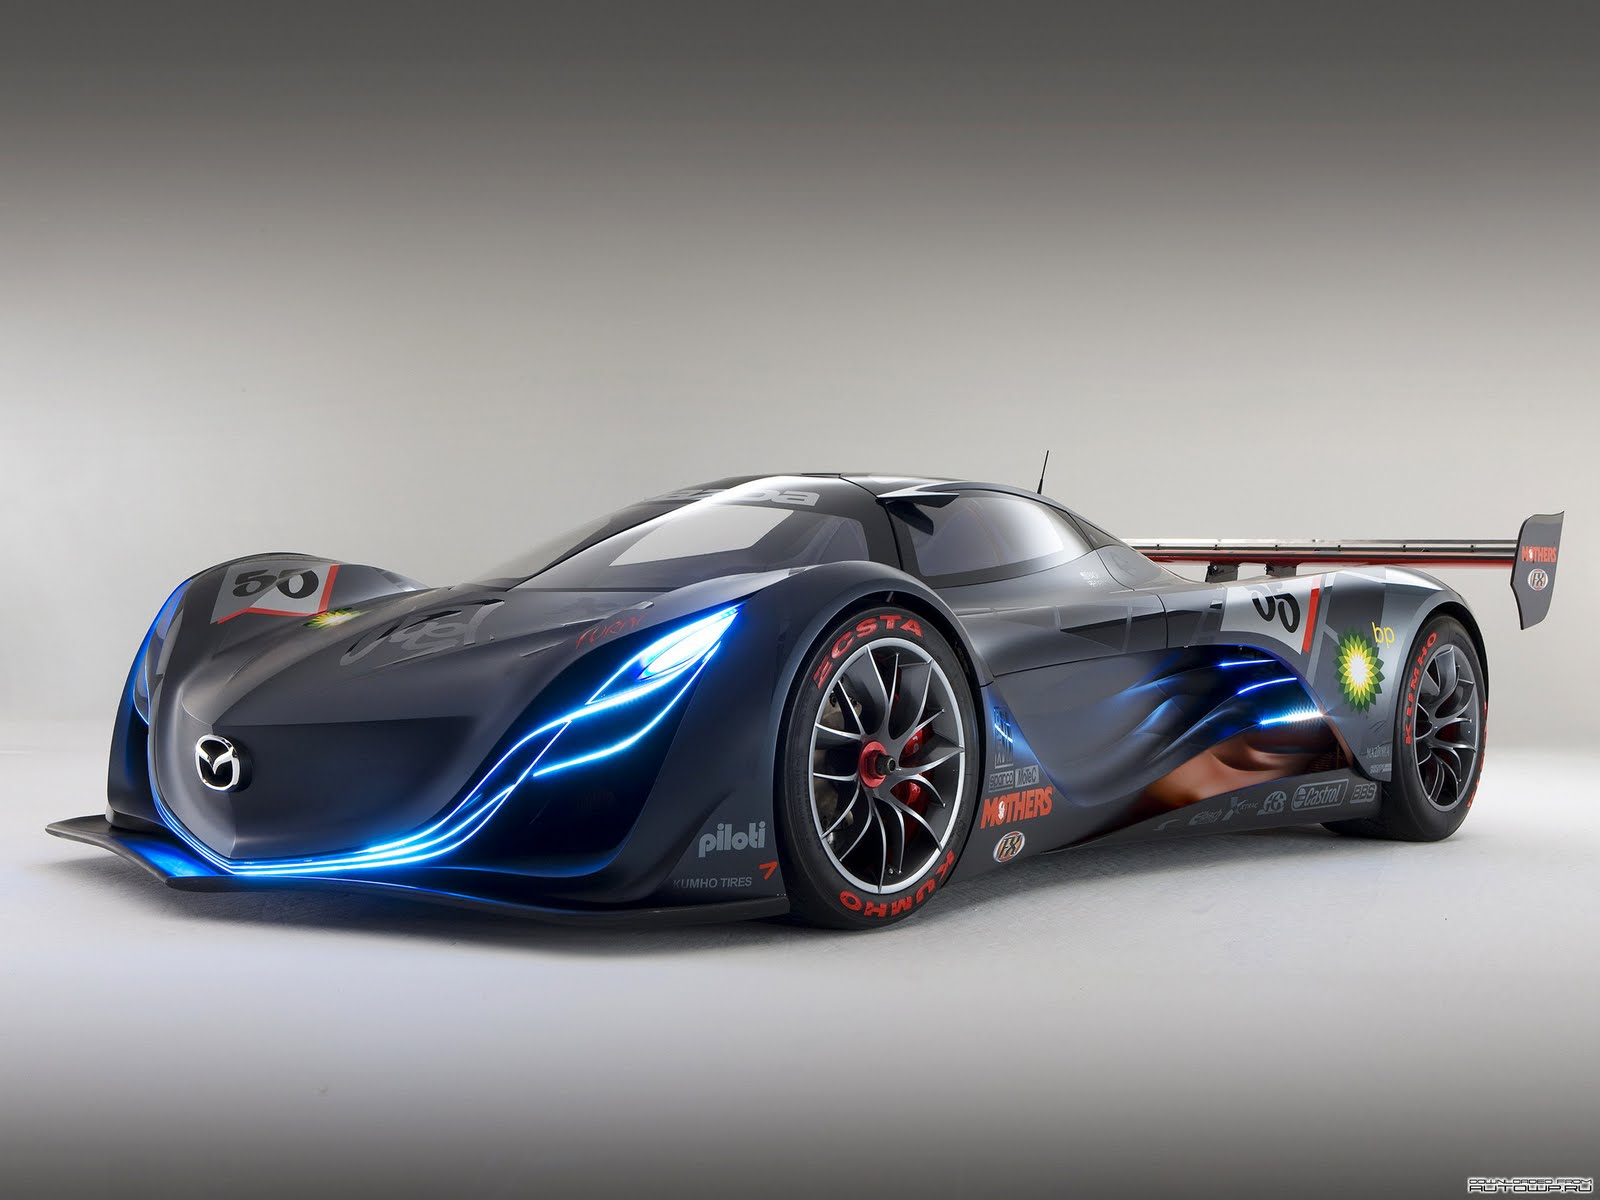 Mazda Furai Concept Hd Wallpaper Wide Screen Wallpaper 1080p 2k 4k